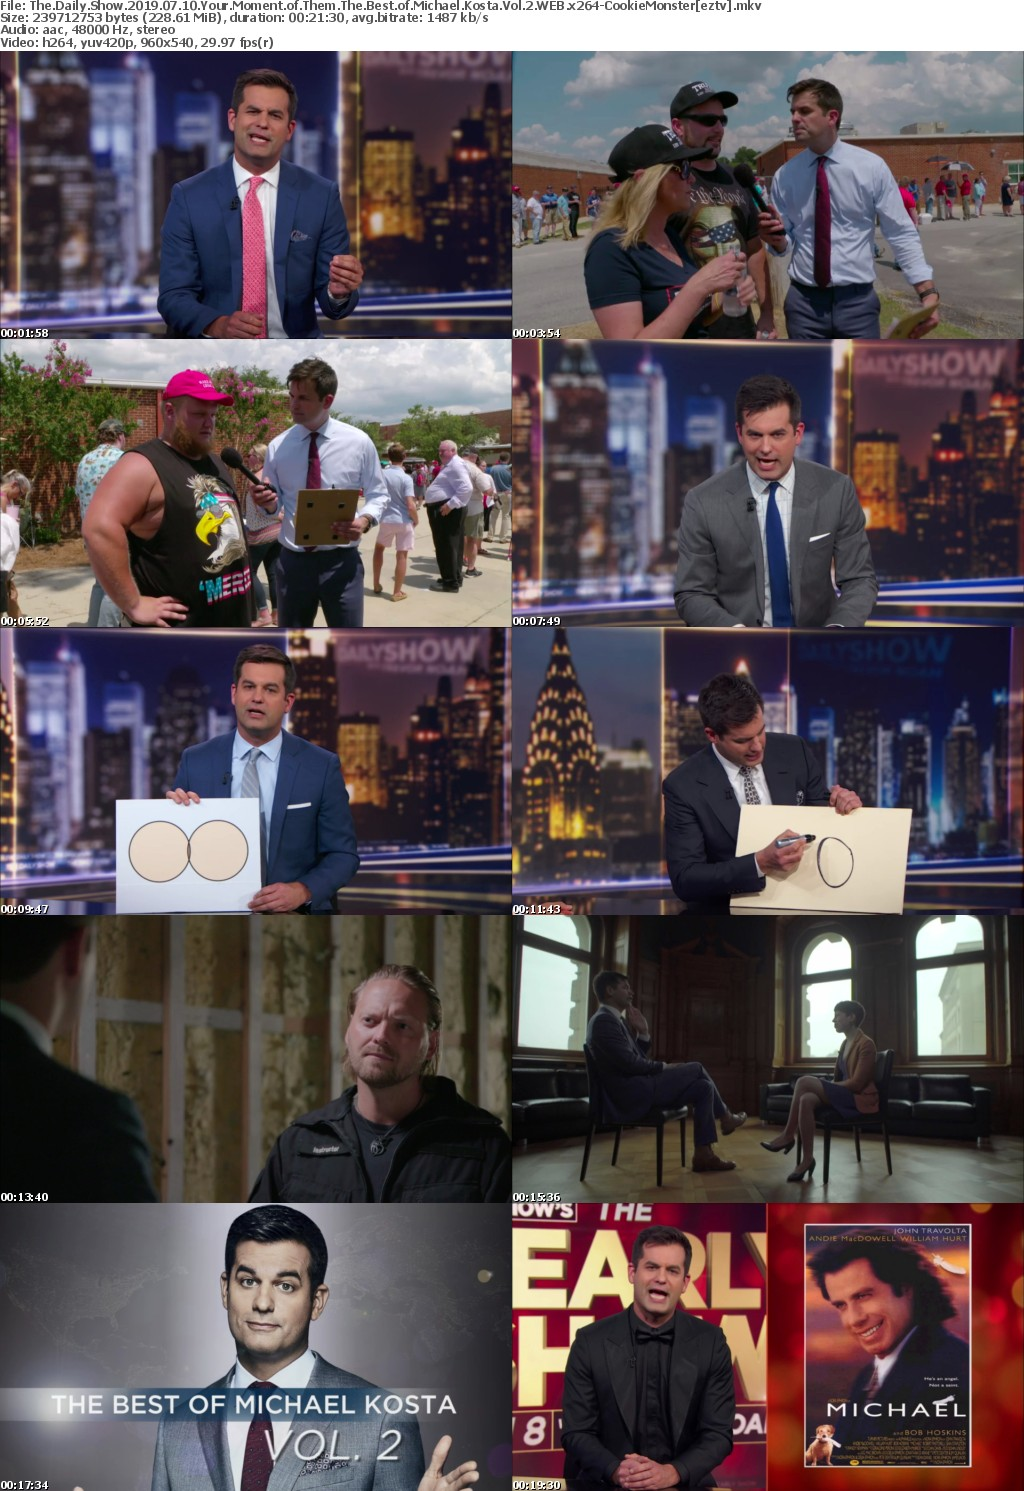 The Daily Show 2019 07 10 Your Moment of Them The Best of Michael Kosta Vol 2 WEB x264 CookieMonster